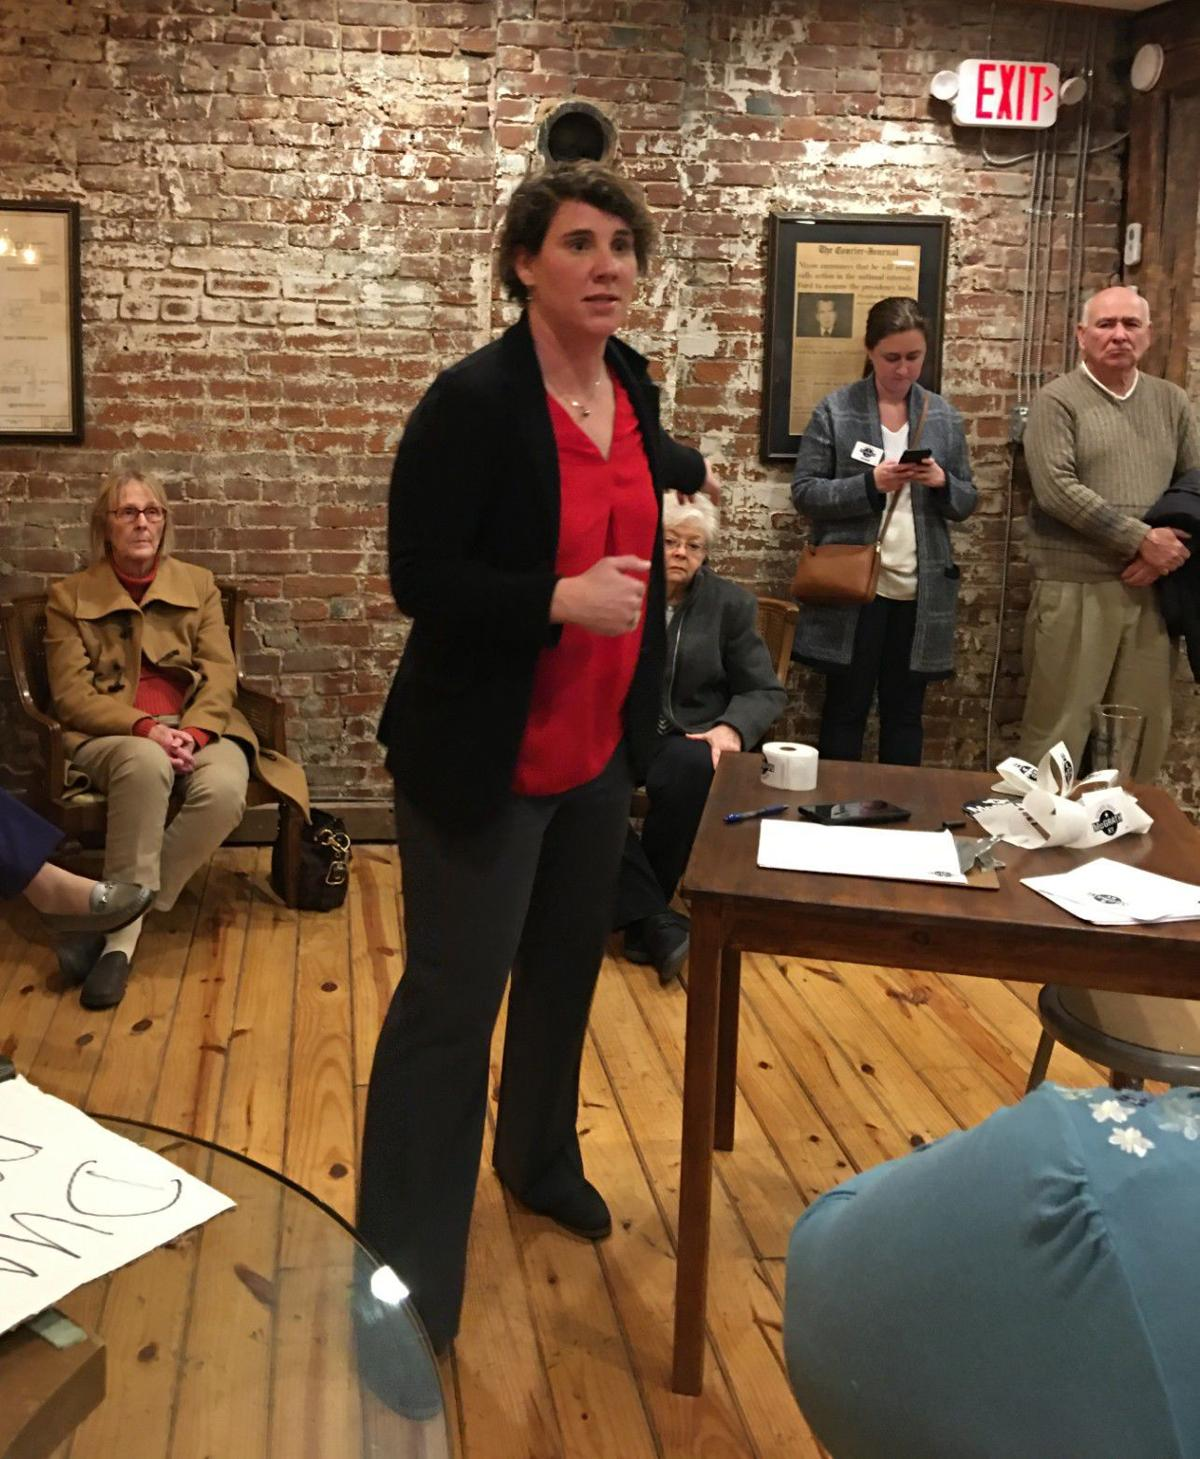 Amy McGrath talks of need for change in the U.S. Senate